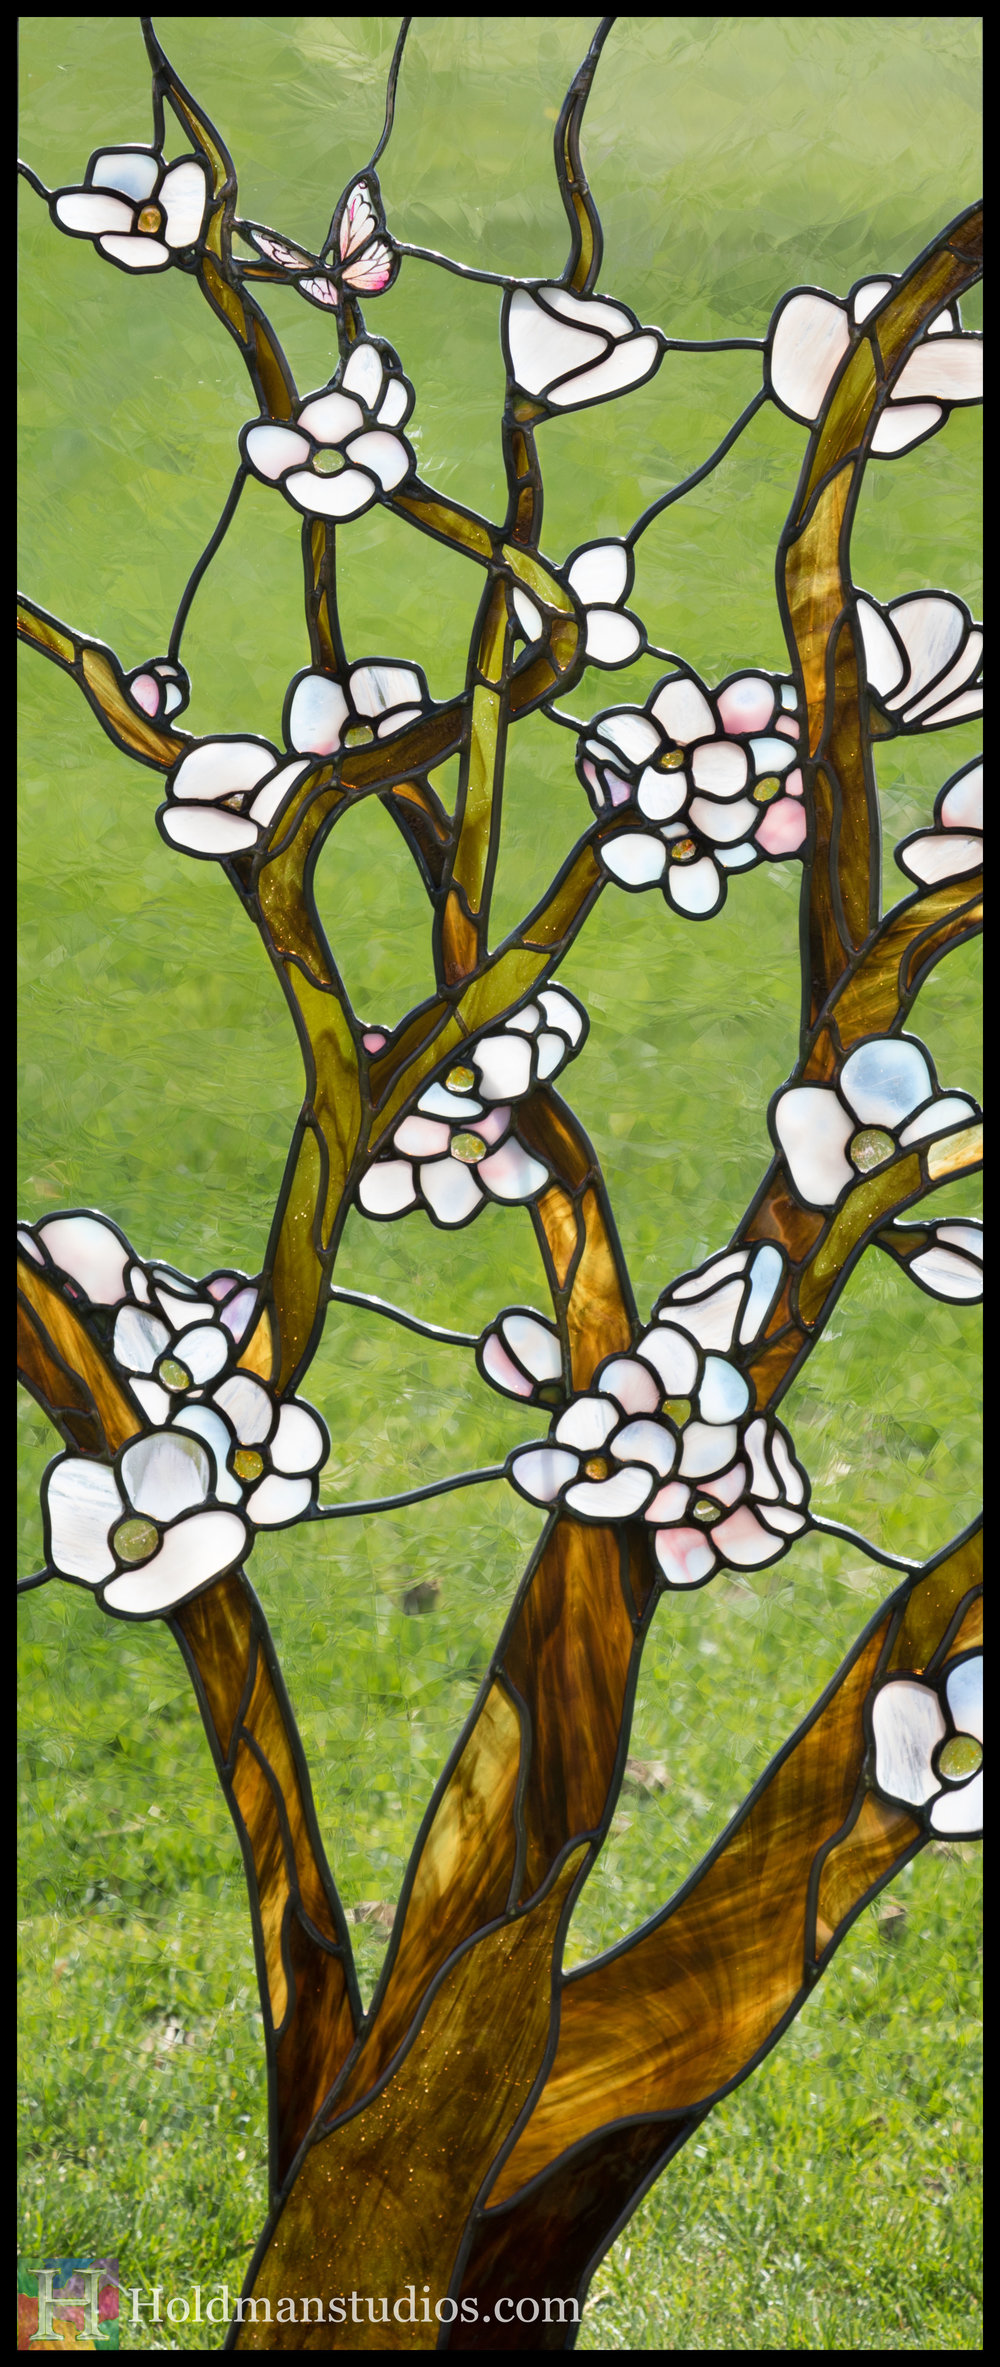 Holdman-Studios-Stained-Glass-Window-Cherry-Tree-Branches-Blossom-Flowers-Butterfly-Grass-Left.jpg